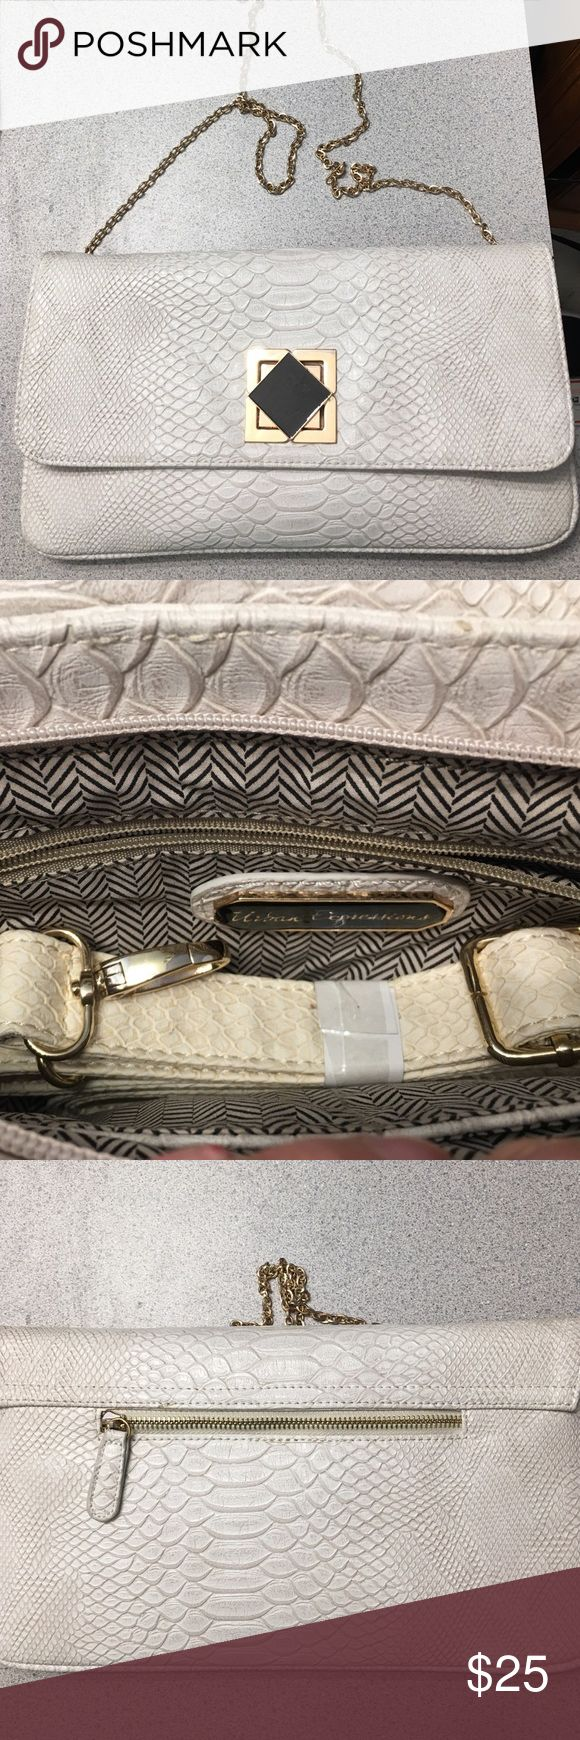 Cream clutch/crossbody bag. Large cream crossbody or clutch bag with gold chain made by urban expressions. Great condition! Urban Expressions Bags Crossbody Bags